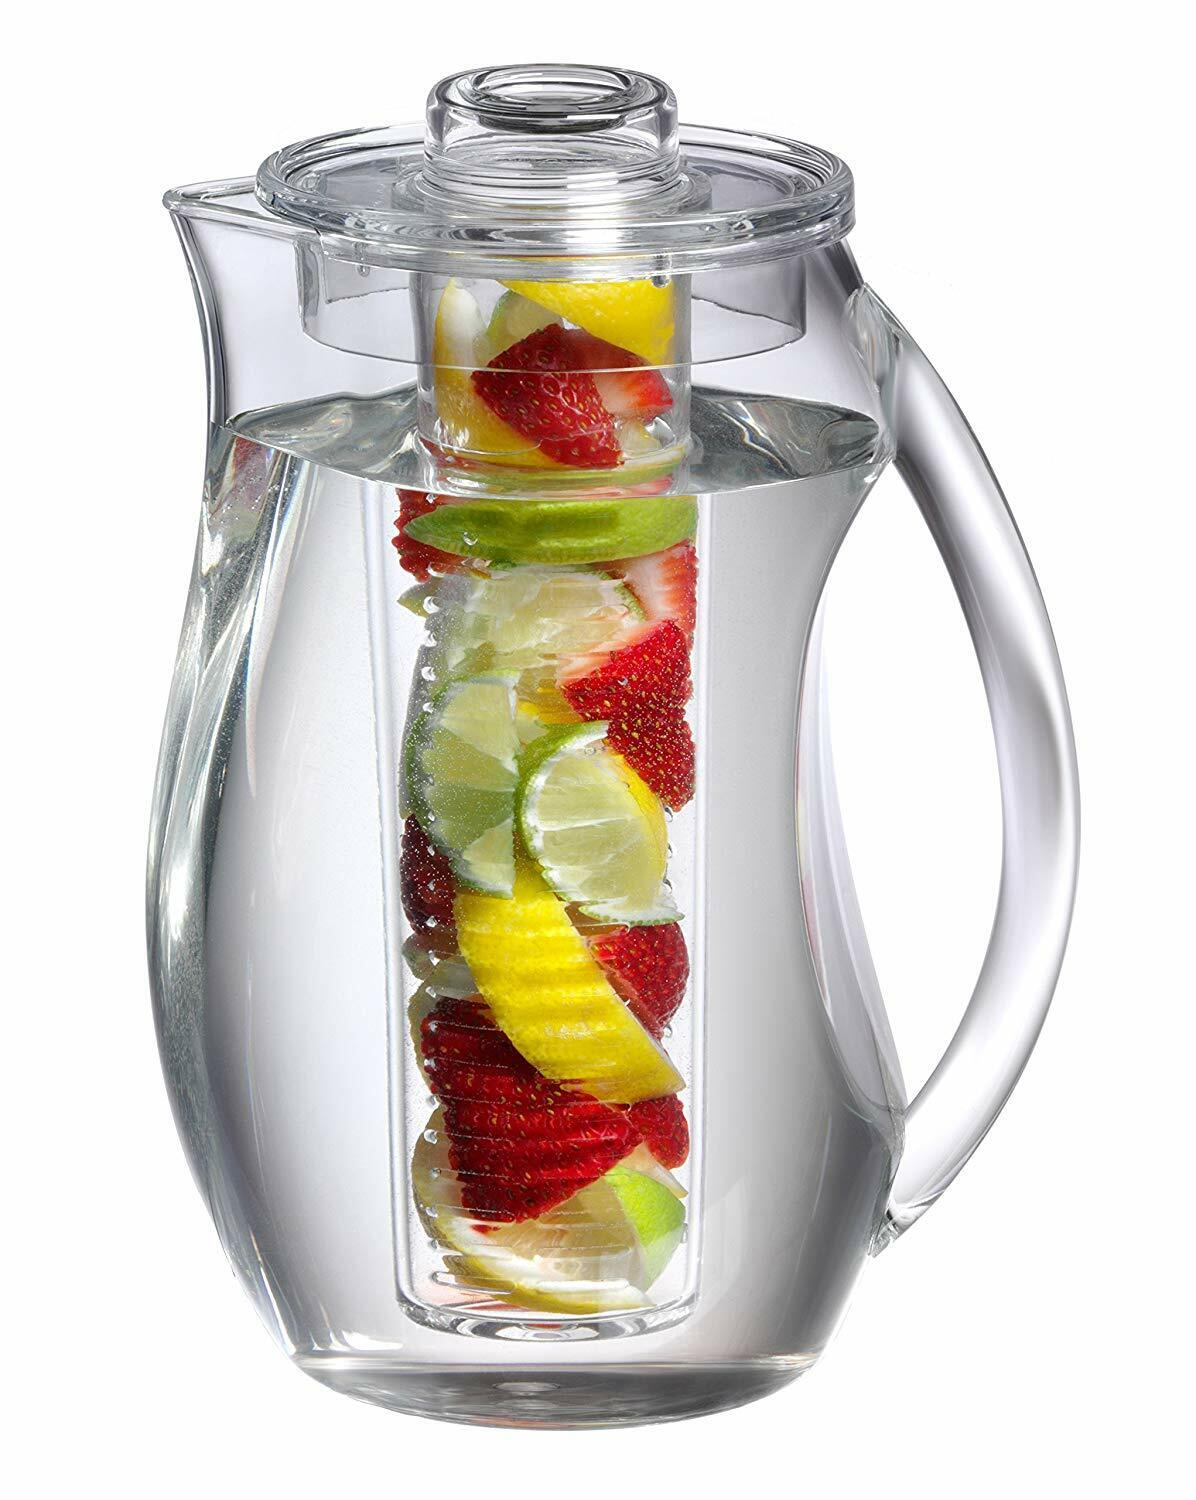 Prodyne FI-3 Fruit Infusion Flavor Pitcher water clear tea i